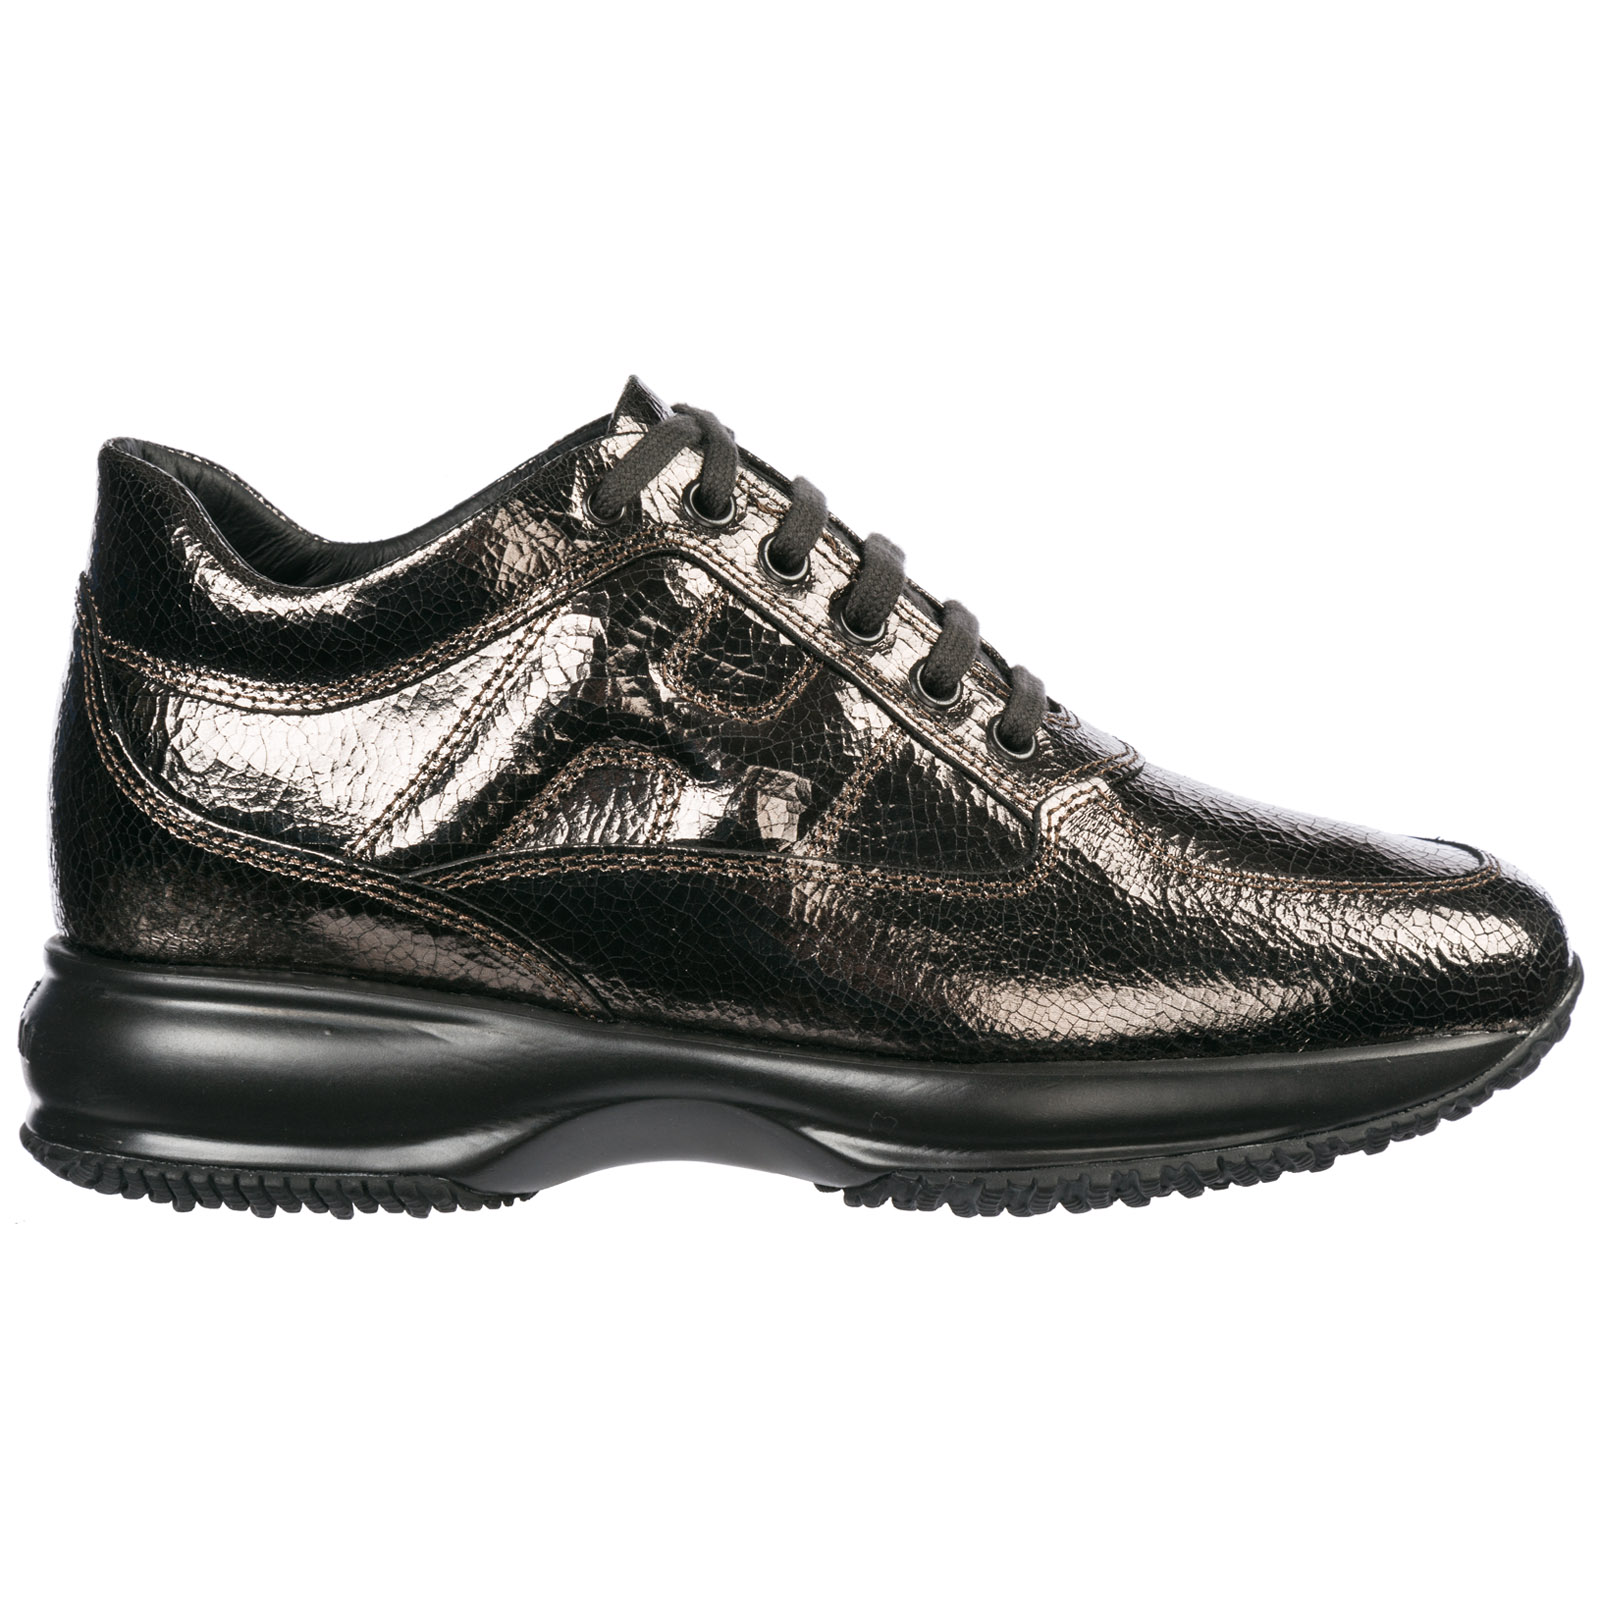 Hogan Women s shoes leather trainers sneakers interactive e8c50f04ecb